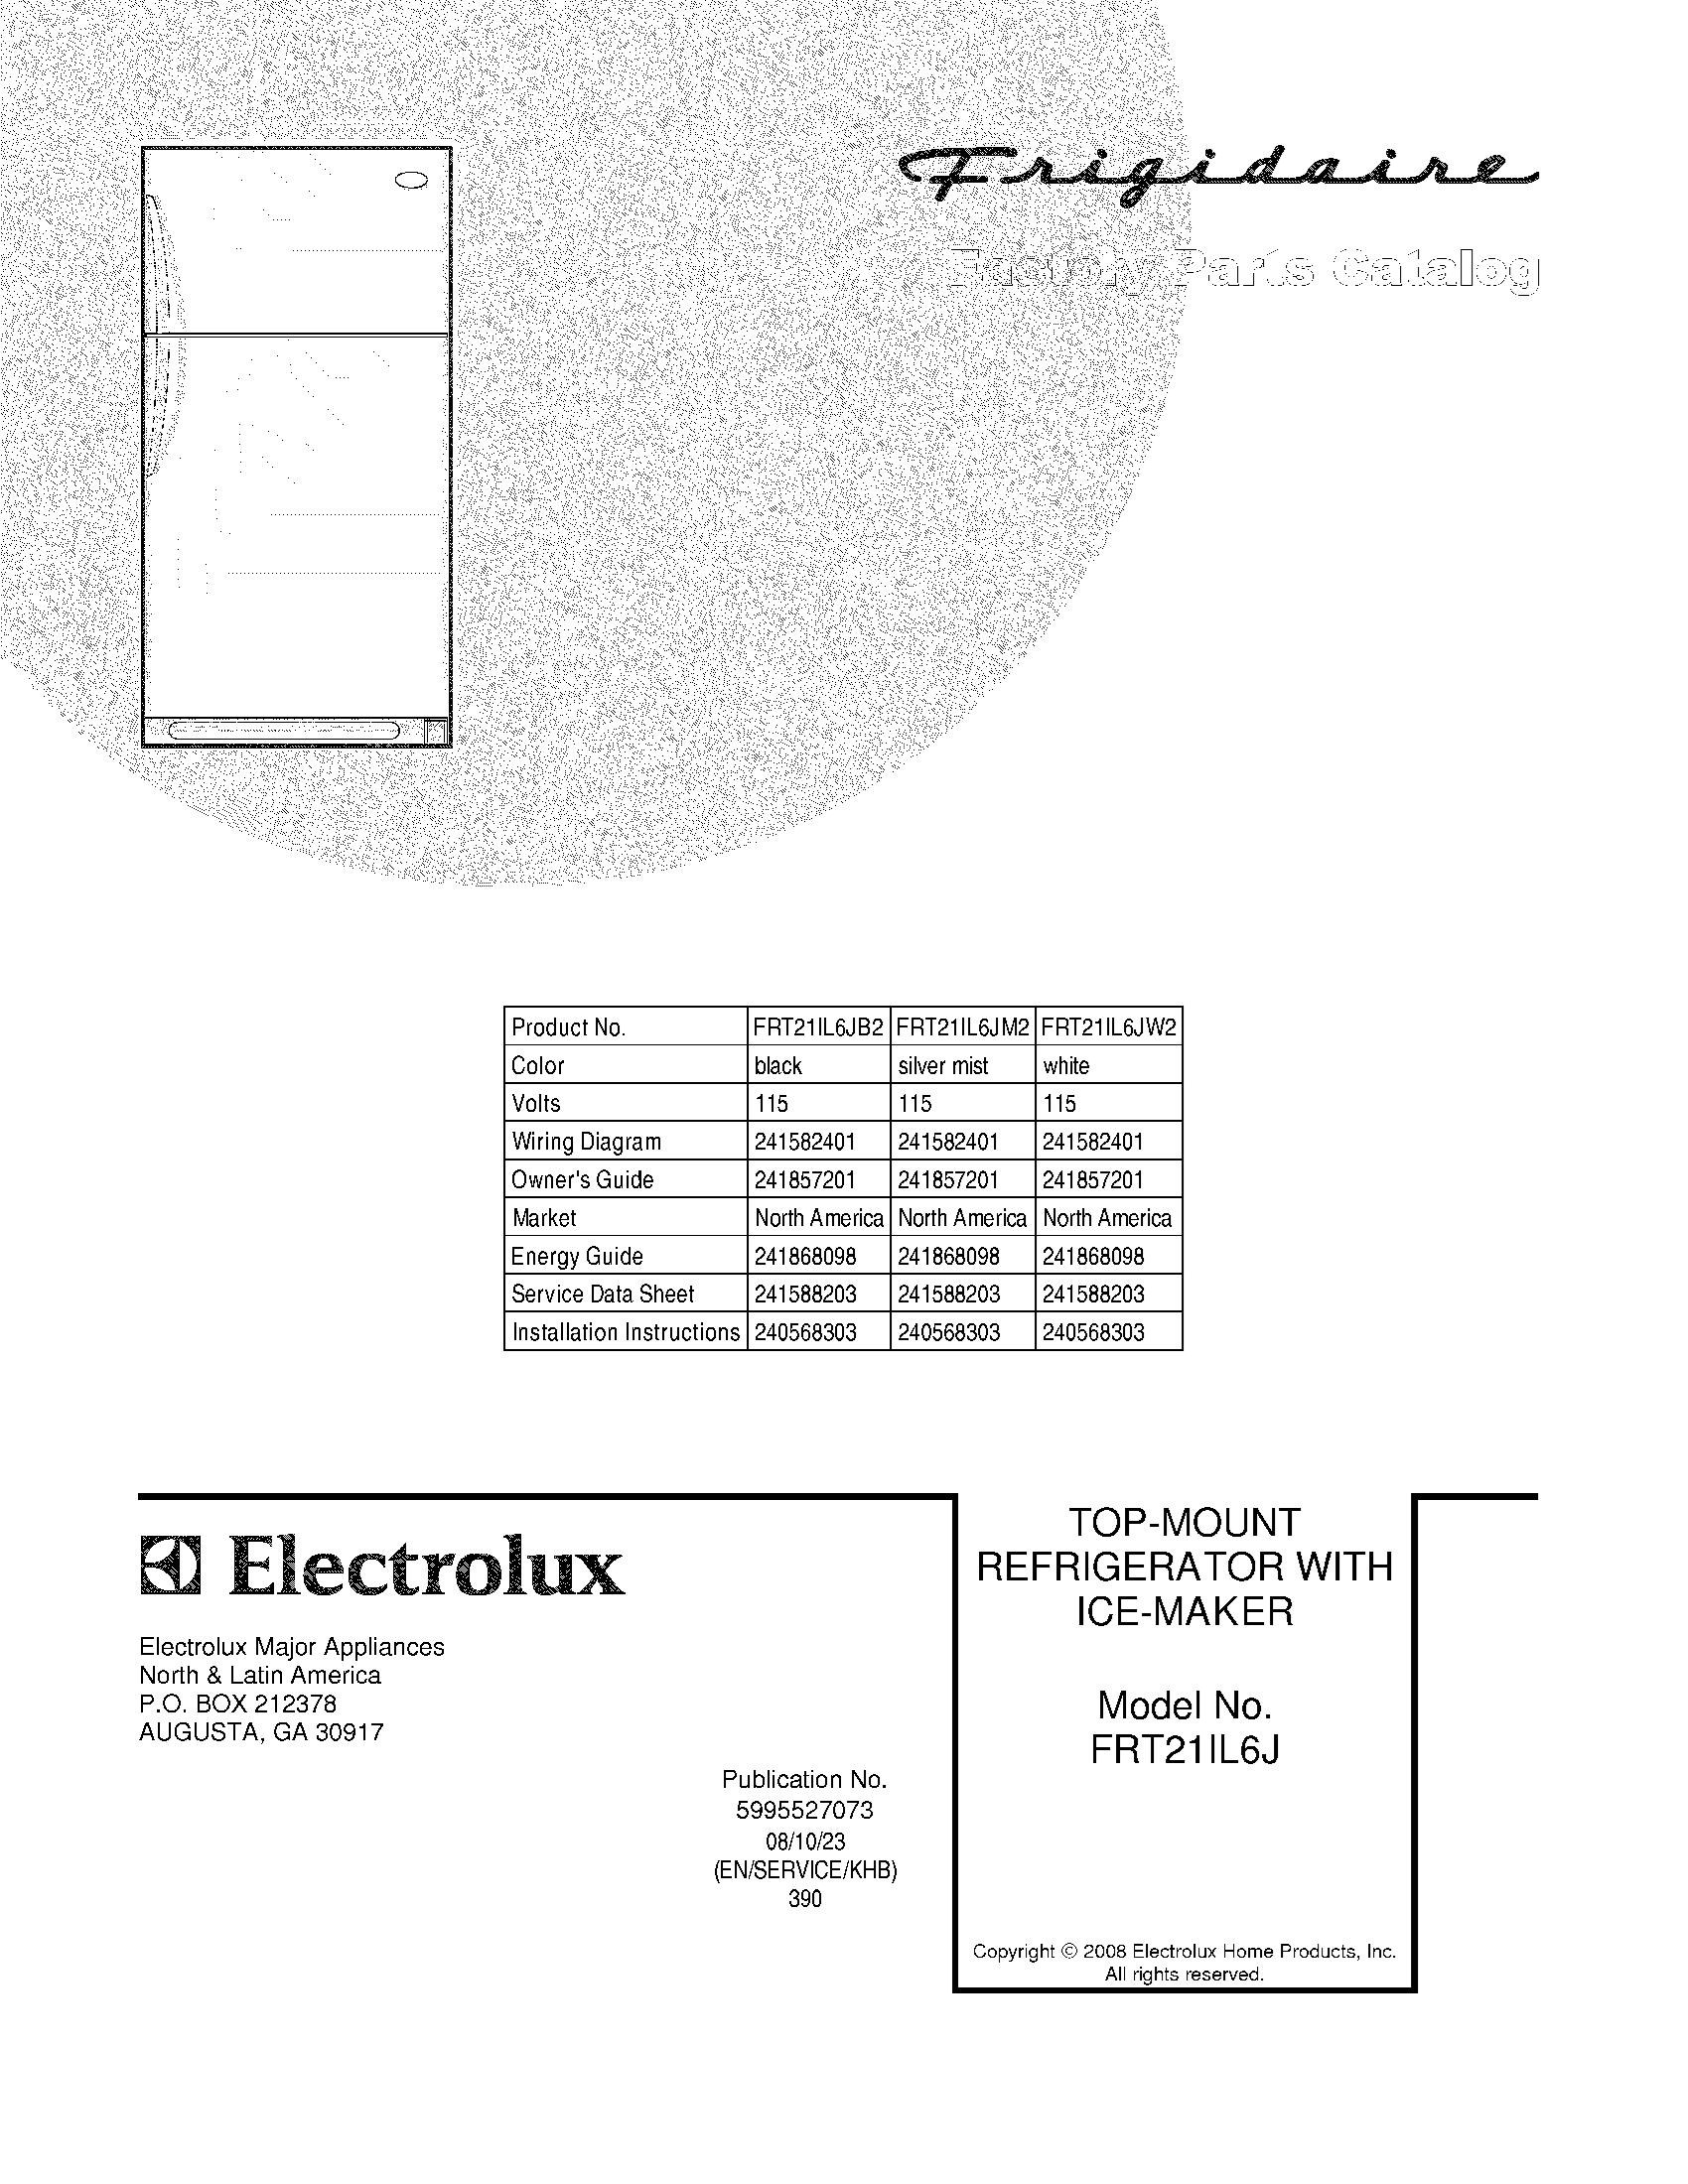 Water Heater Installation Tacoma Waconventional Heaters Model Gts18hcmerww Wiring Diagram Diagrams Schematics